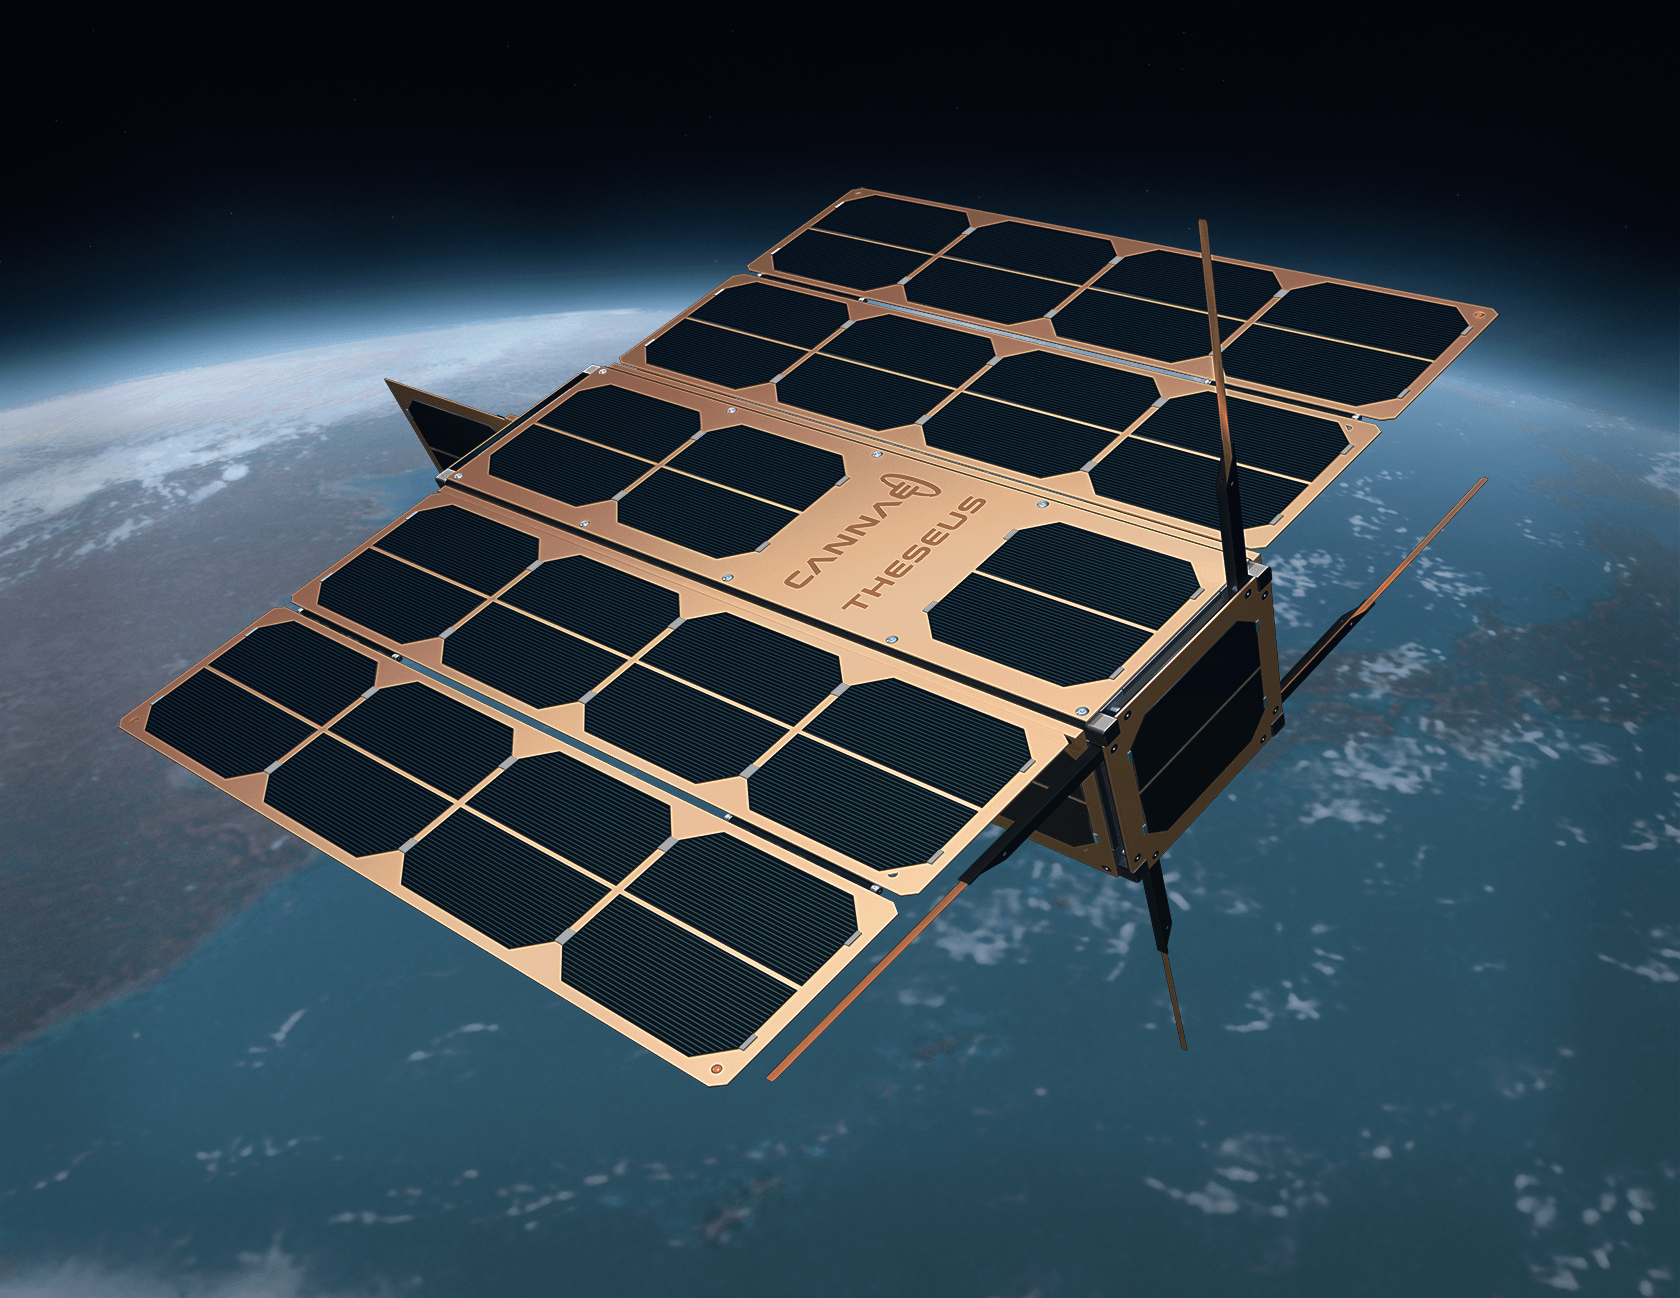 Cannae is developing a 3U cubesat